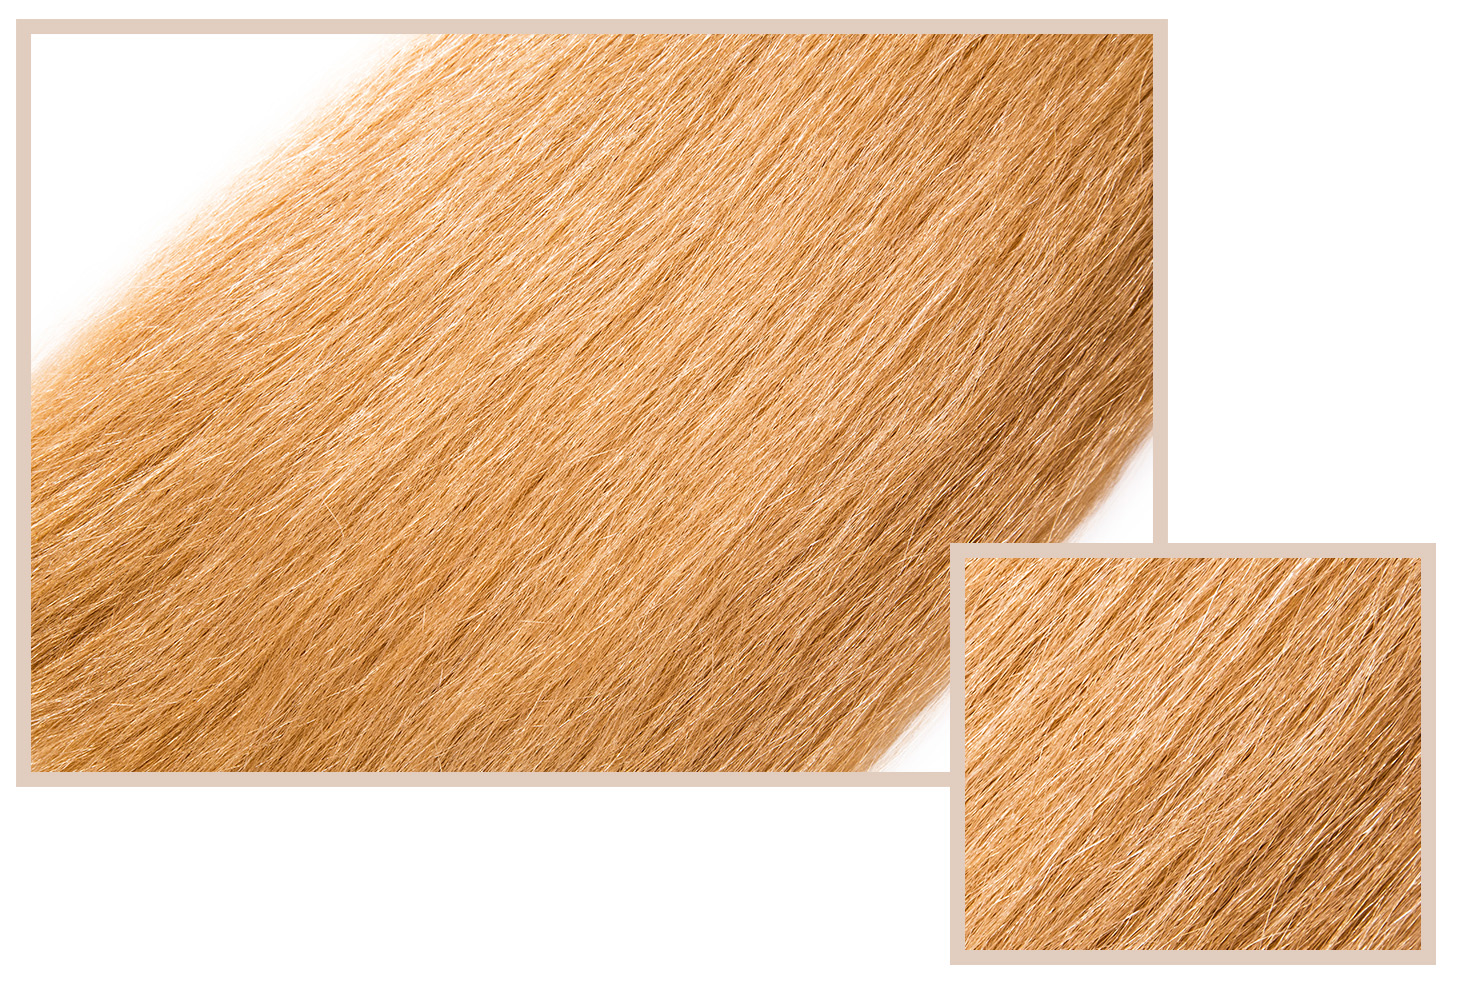 SAHARIAN SMOOTH - Available in Classic CollectionTextured, full of body and sheen. Soft to the touch and easy to manage. This coarse style can be worn naturally straight, wavy or curly. Long lasting volume and richness.